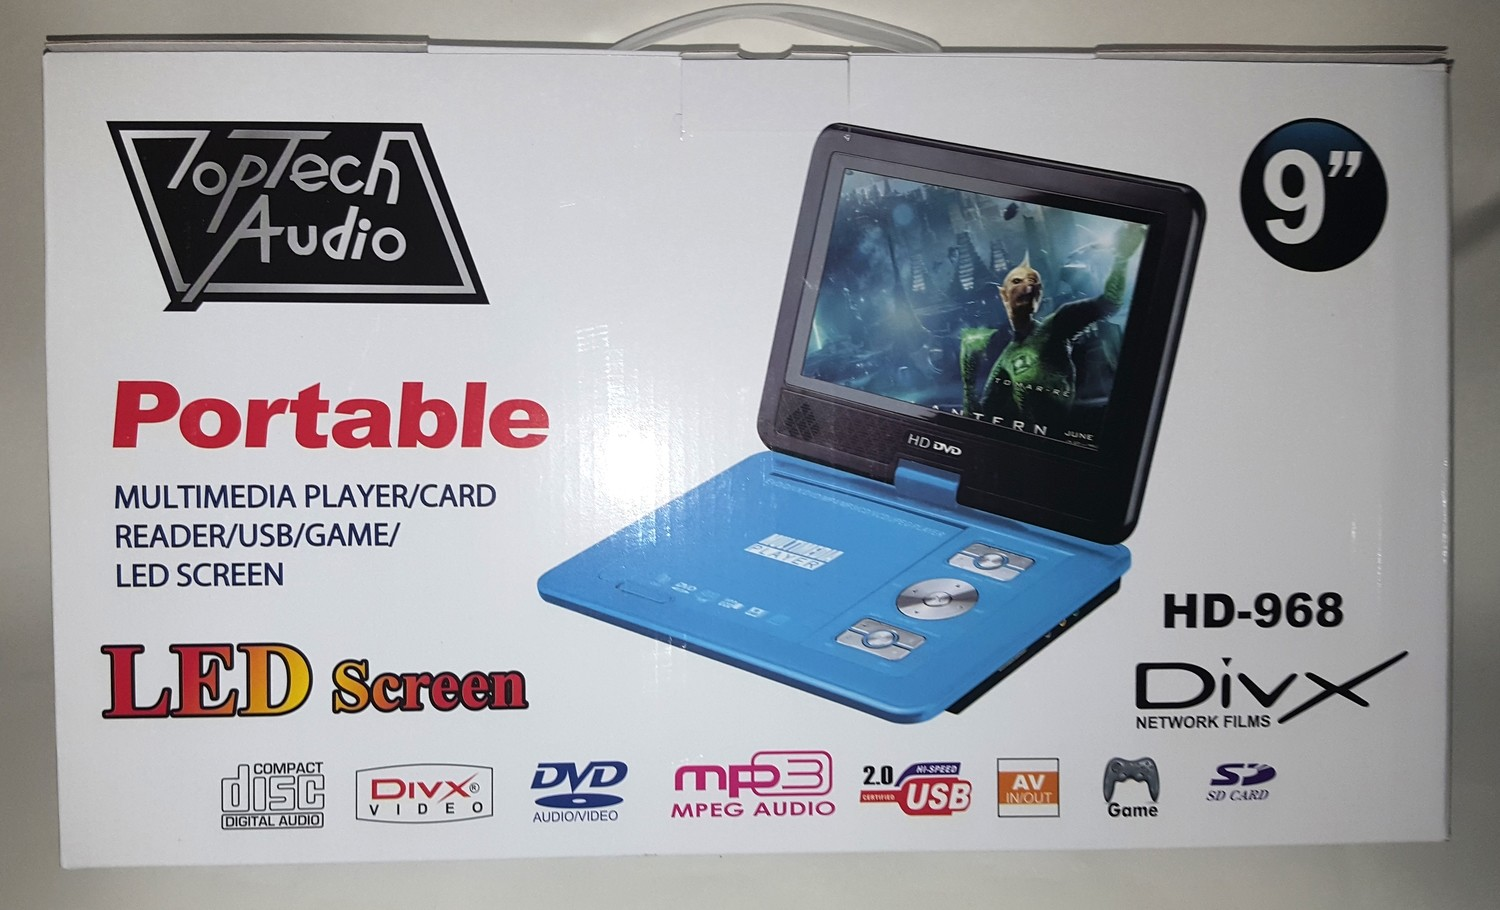 Toptech Audio HD-968 DVD player